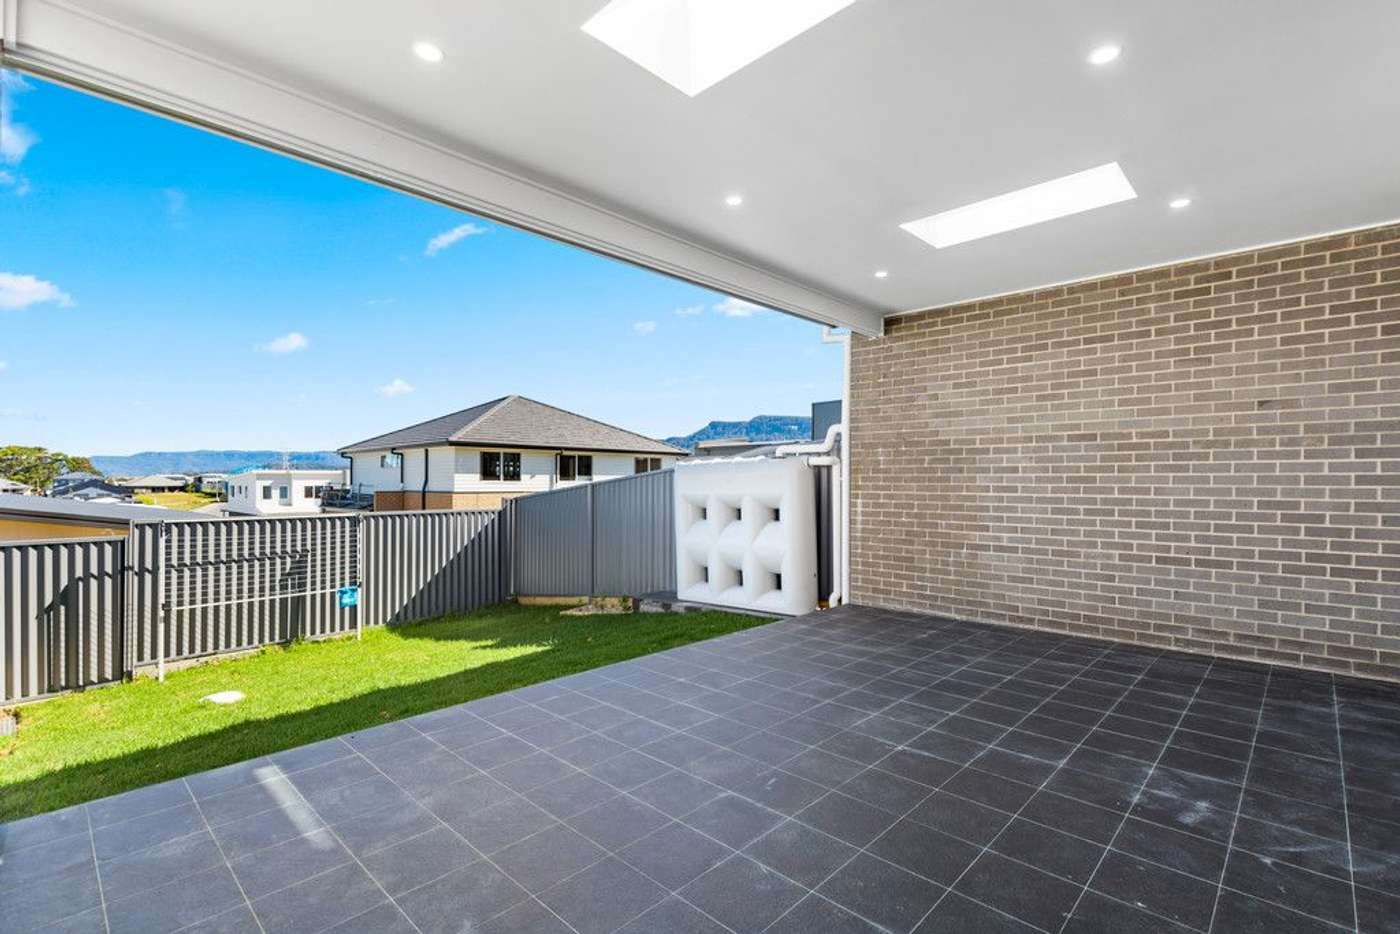 Fifth view of Homely house listing, 41A Neeson Road, Kembla Grange NSW 2526